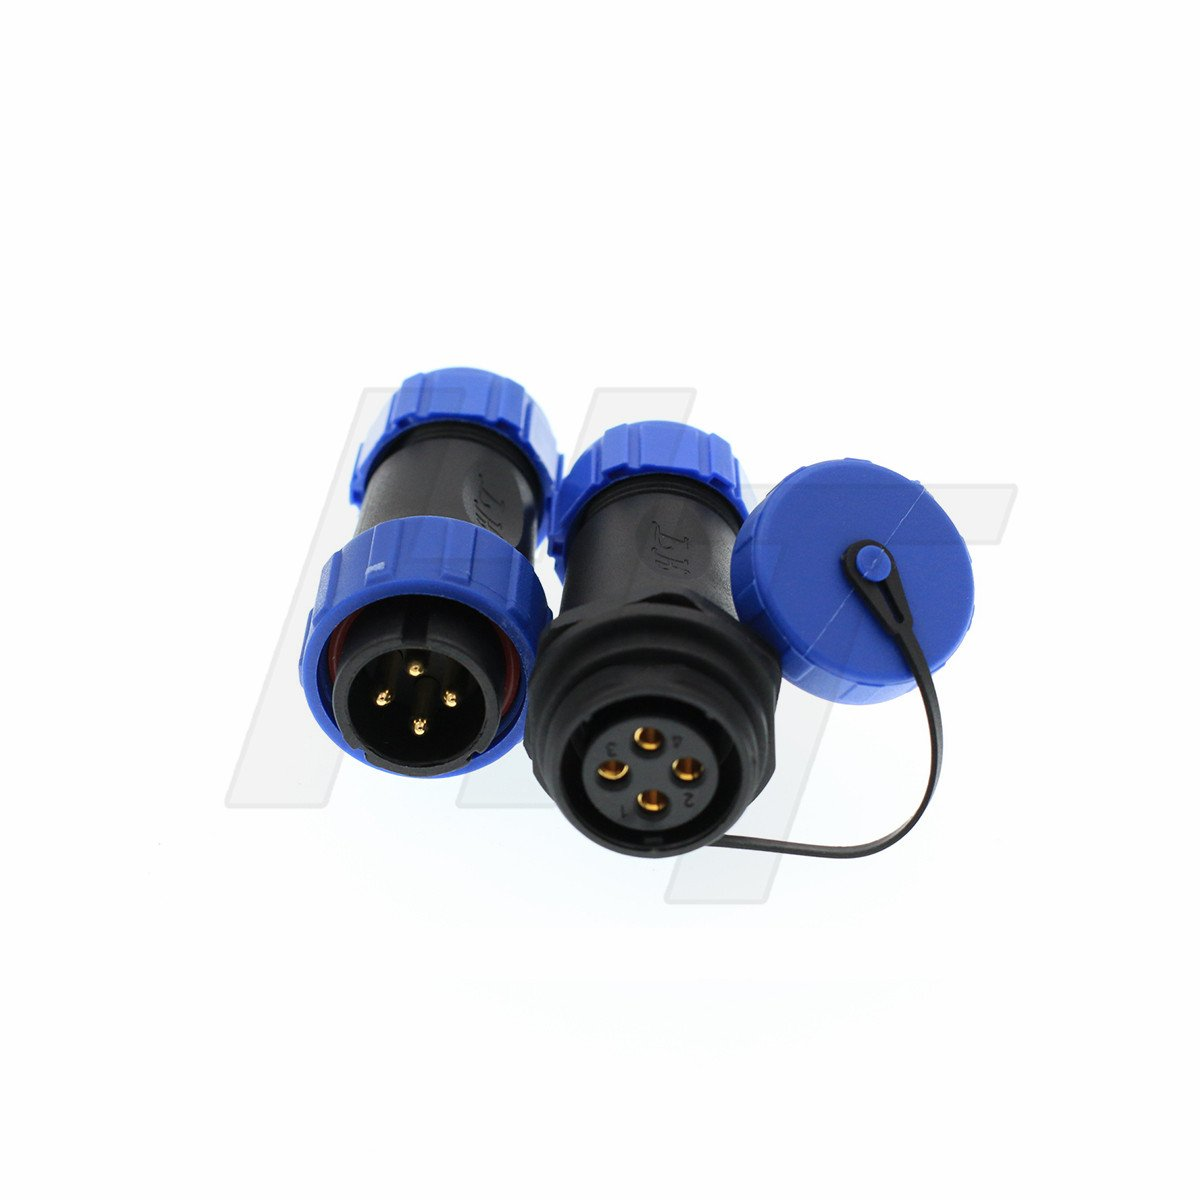 HangTon HE13 4 Pin Connector Waterproof Wire Cable Plug Male Female Industrial Electrical Circular Power 5Amp (5set) by HangTon Connect